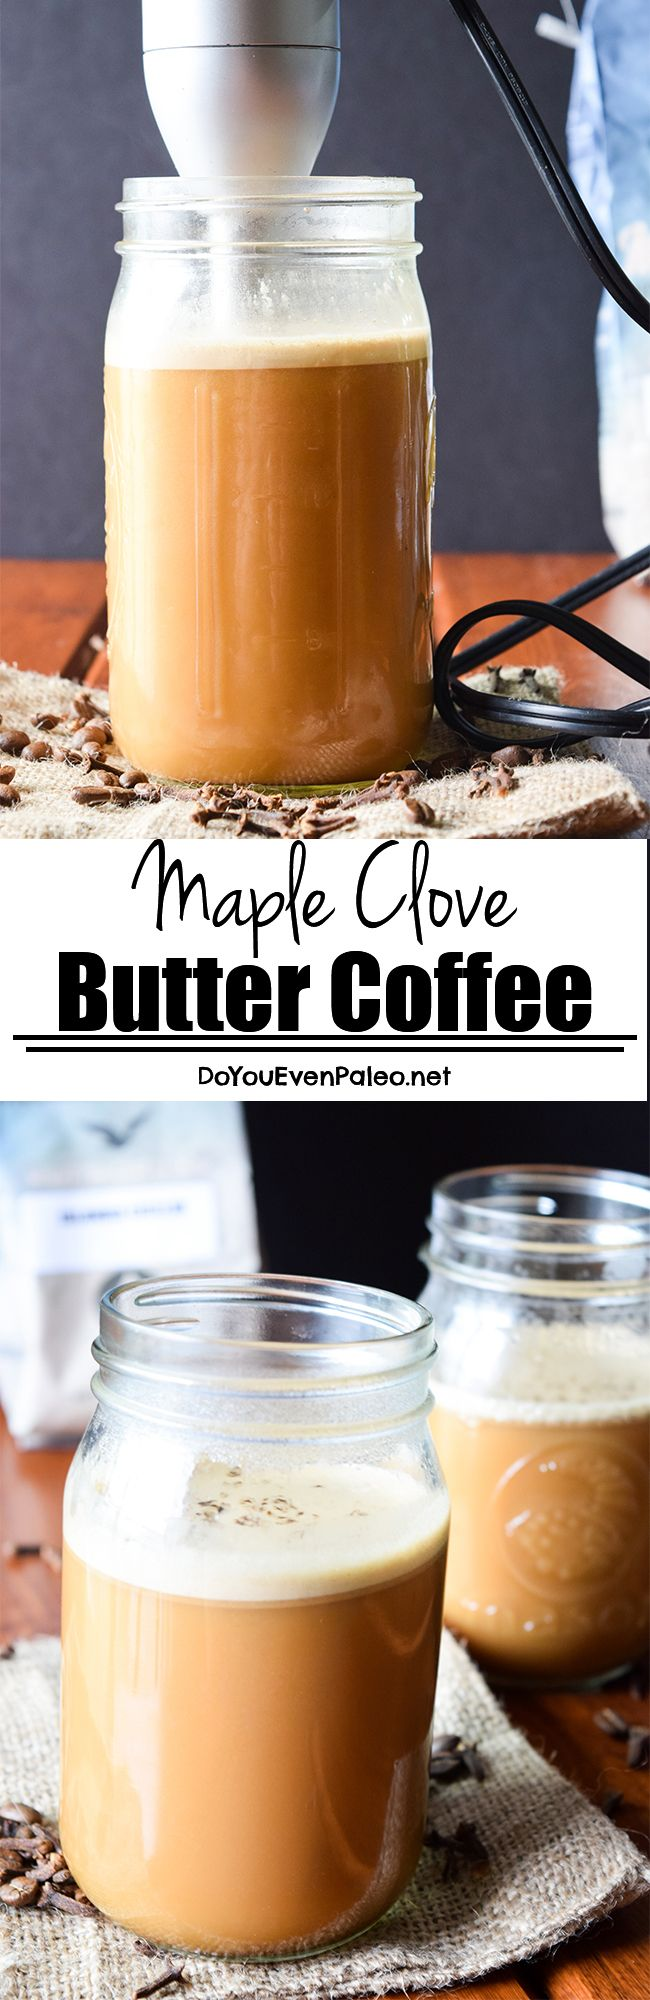 Maple Clove Butter Coffee - the perfect way to celebrate #NationalCoffeeDay! | DoYouEvenPaleo.net